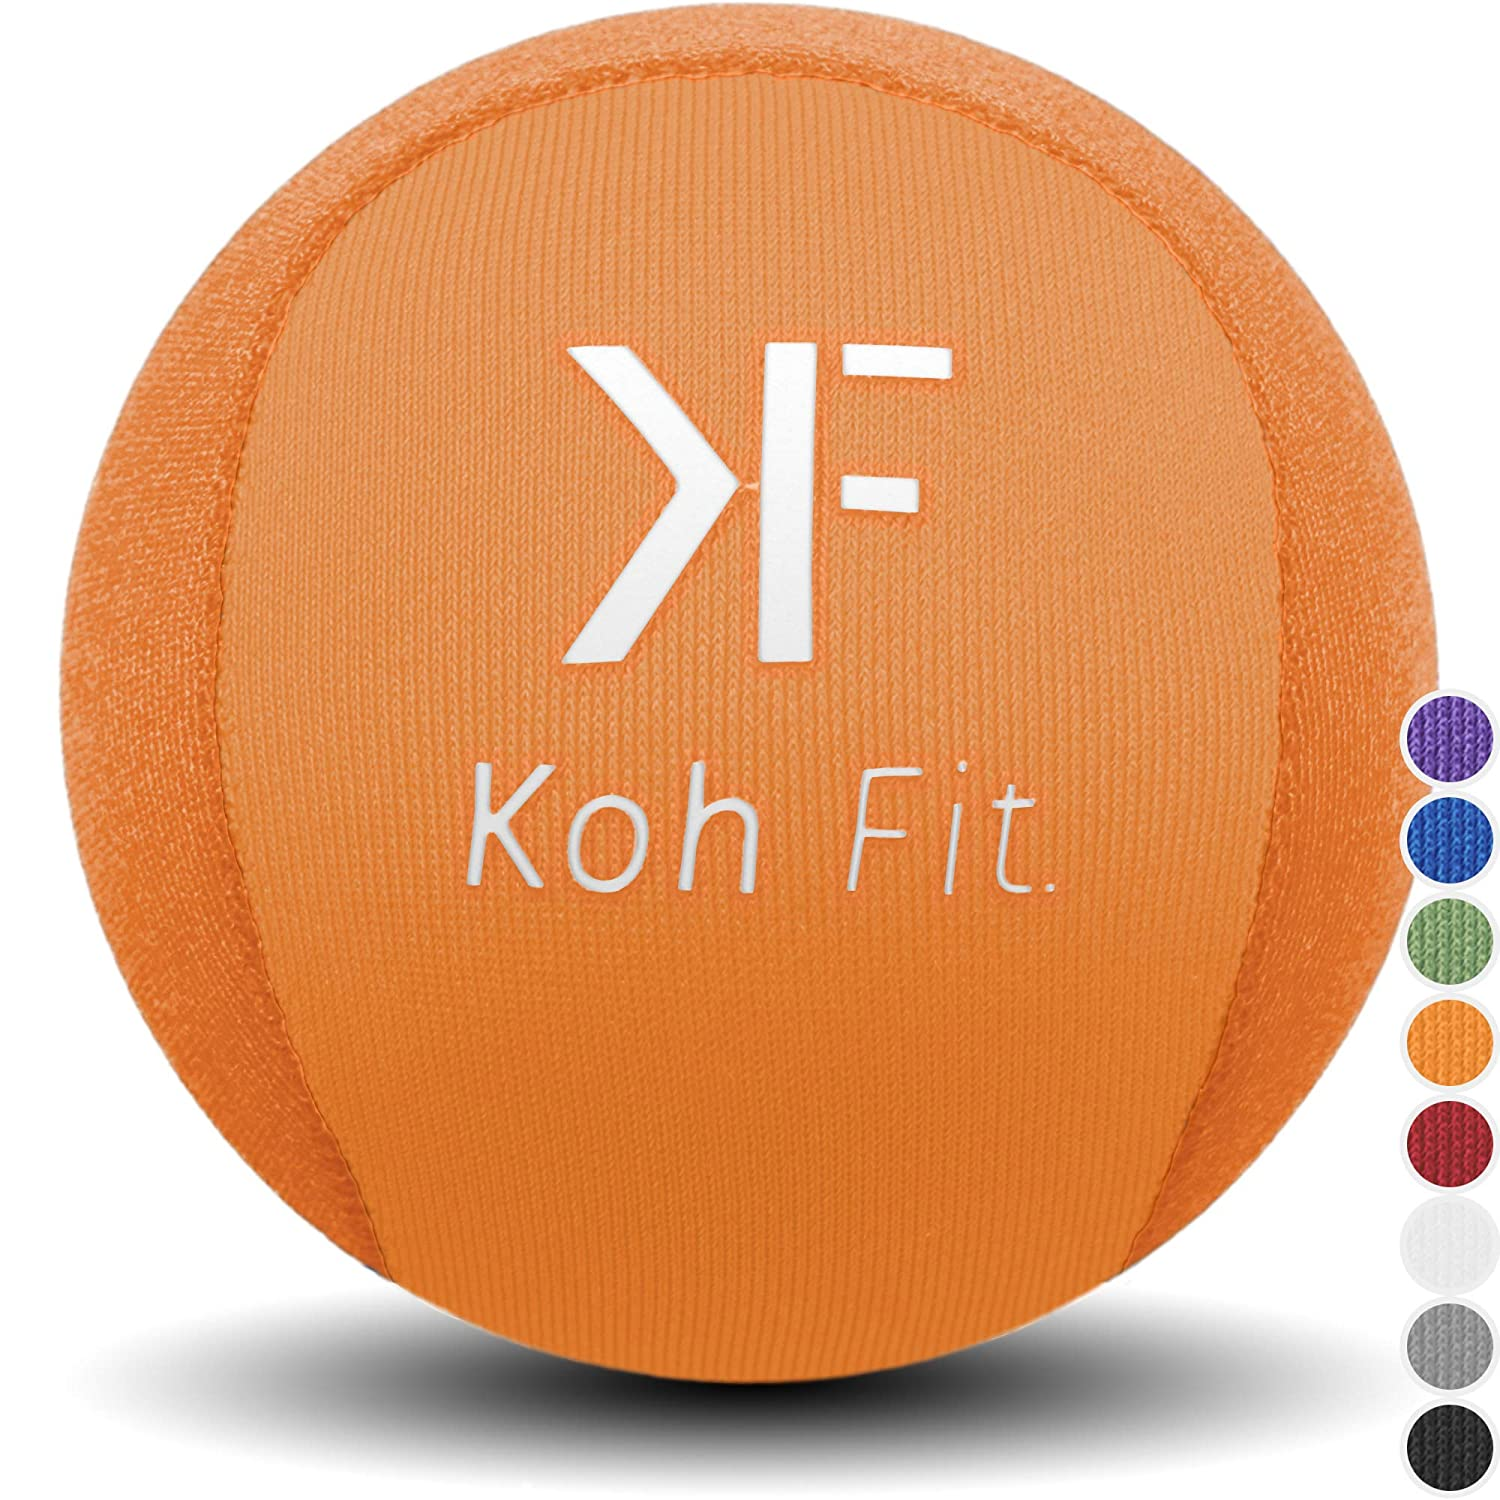 Koh Fit Stress Ball for Adults – Stress Reliever Squeeze Balls – 2 Bonus Ebooks Hand Therapy Exercise Guide Stress Relief Guide